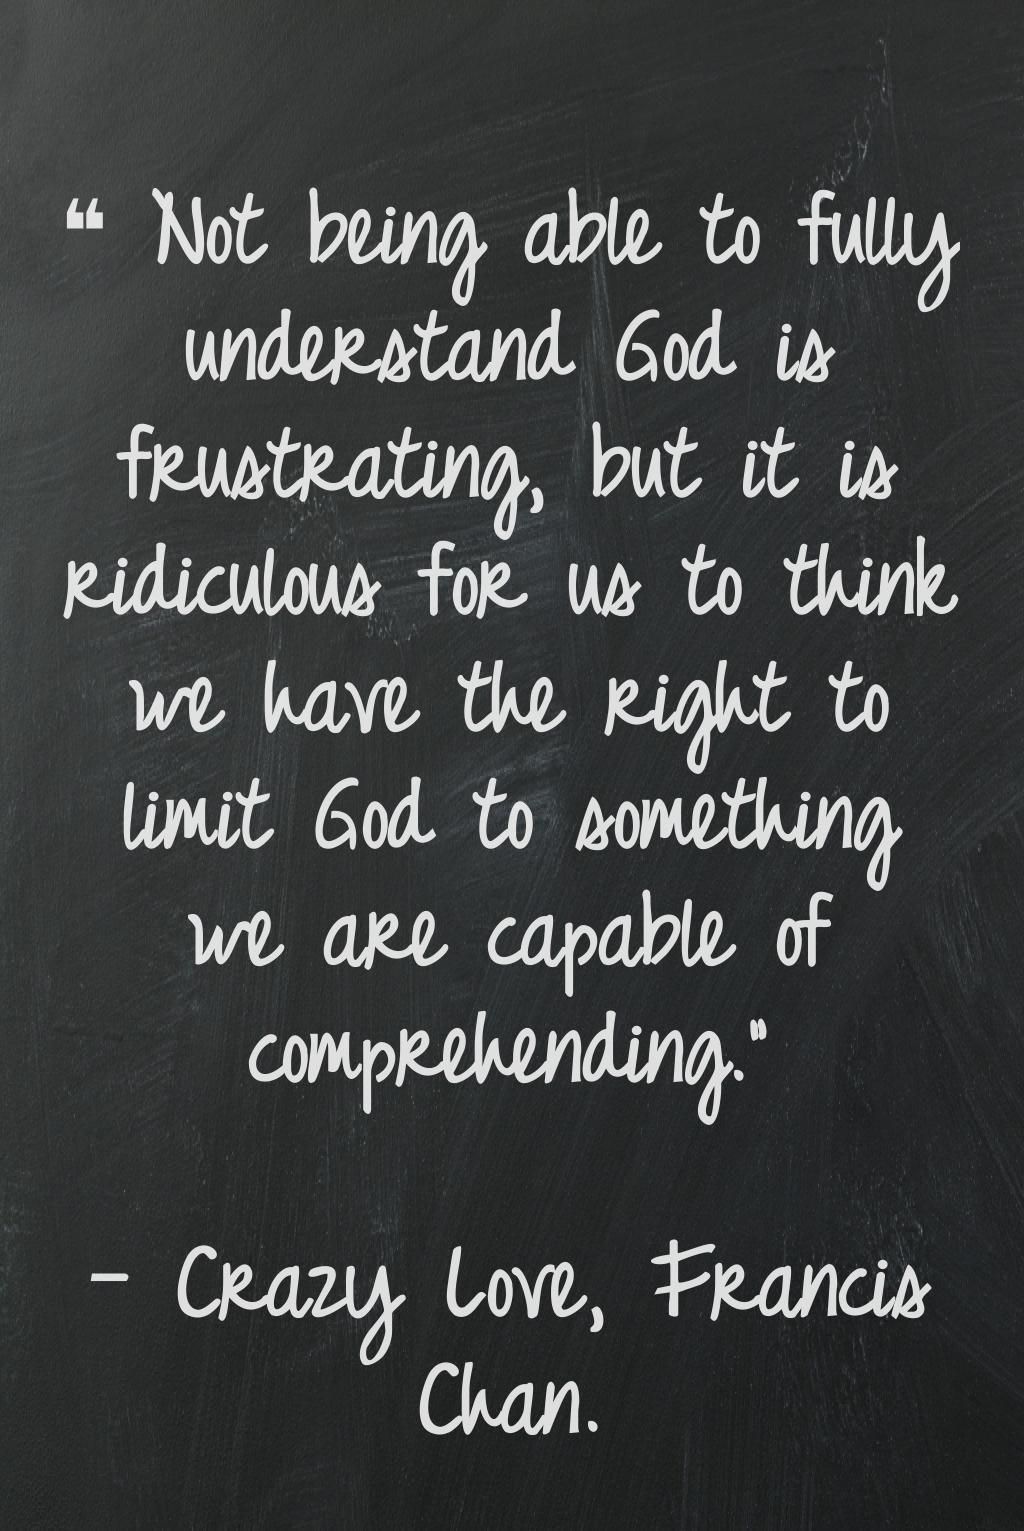 understanding god words of encouragement quotations christian